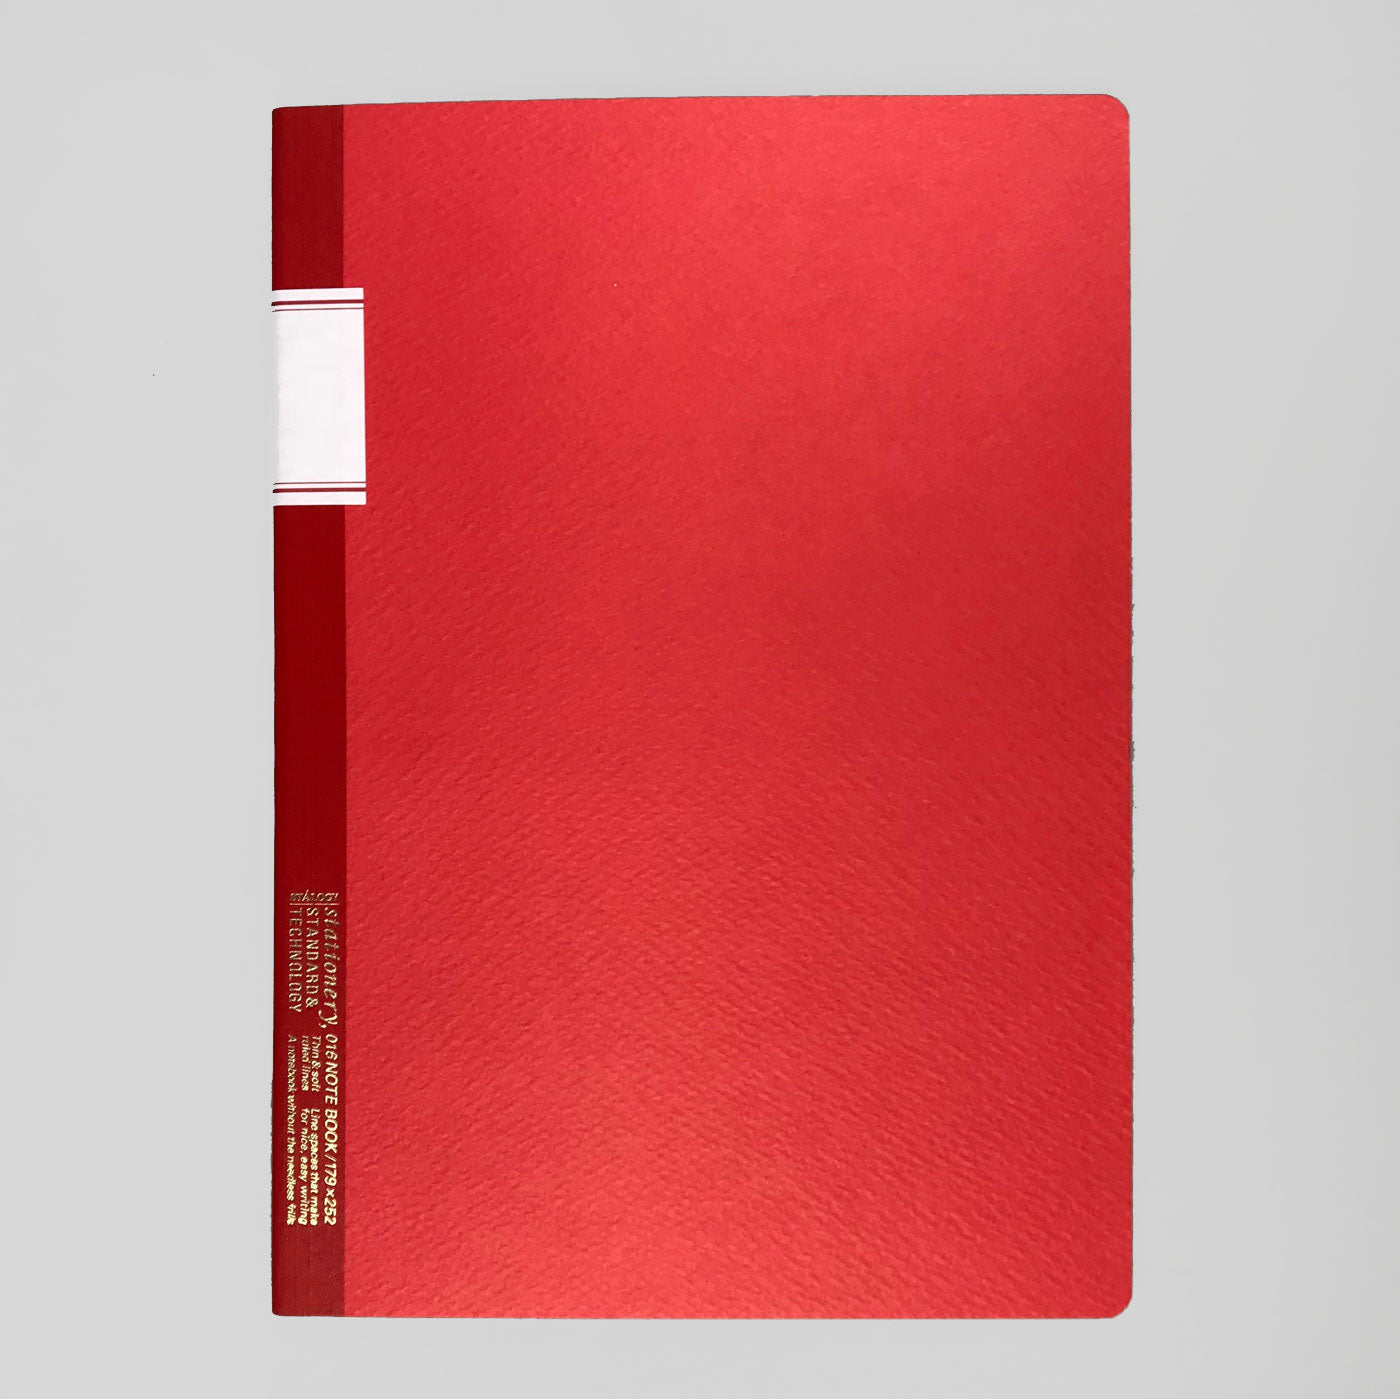 STALOGY 016 VINTAGE NOTEBOOK - RED.